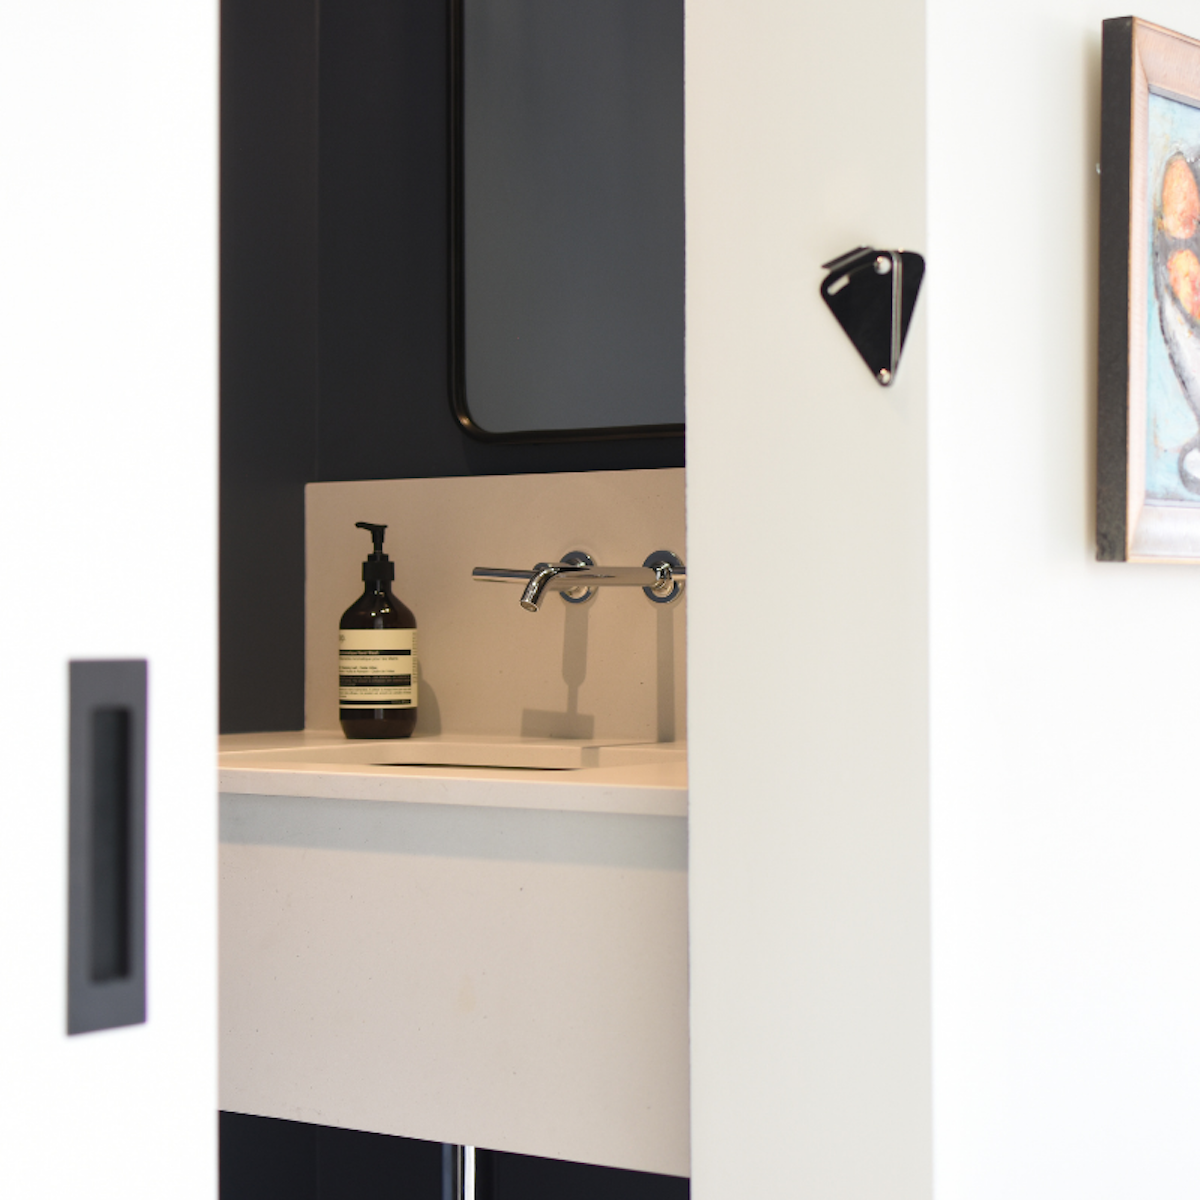 montreal-ca-powder-room-floating-sink-wall-mount-faucet-3